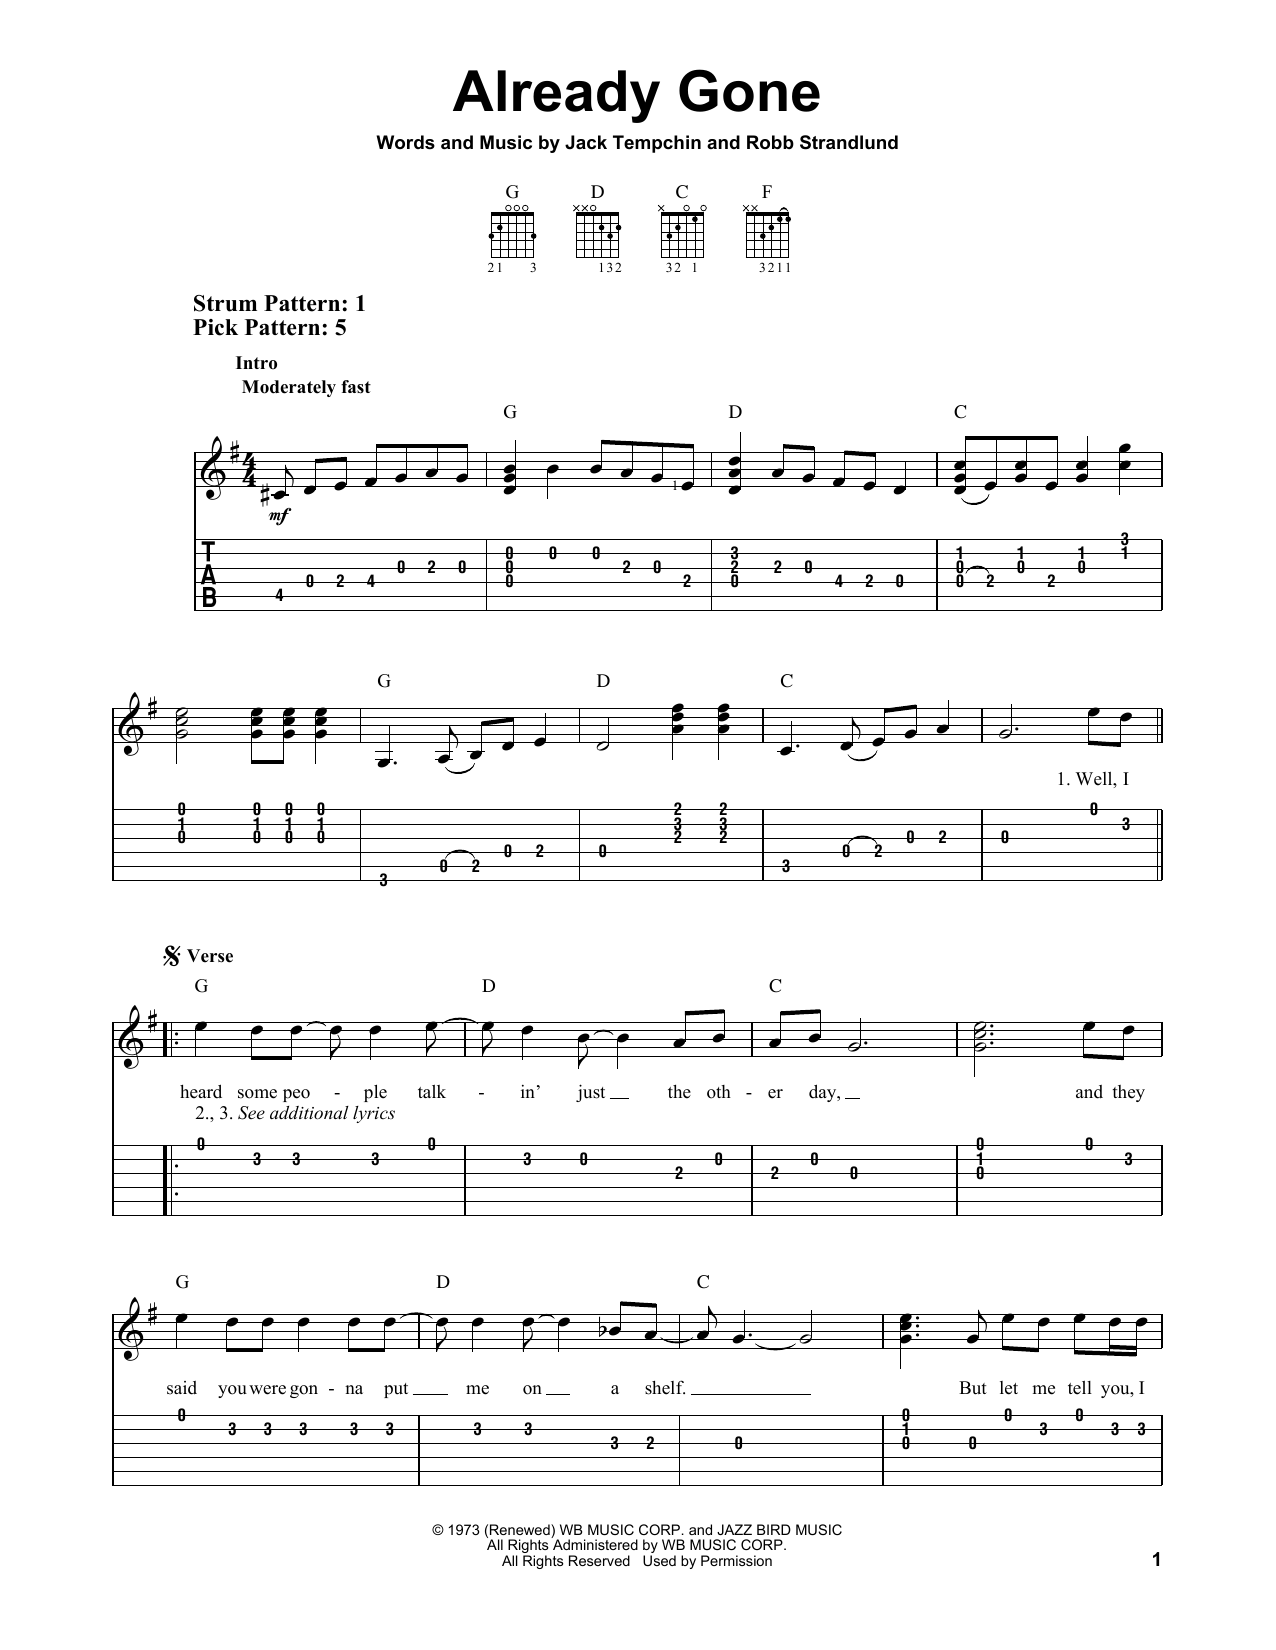 Eagles Already Gone sheet music notes and chords. Download Printable PDF.